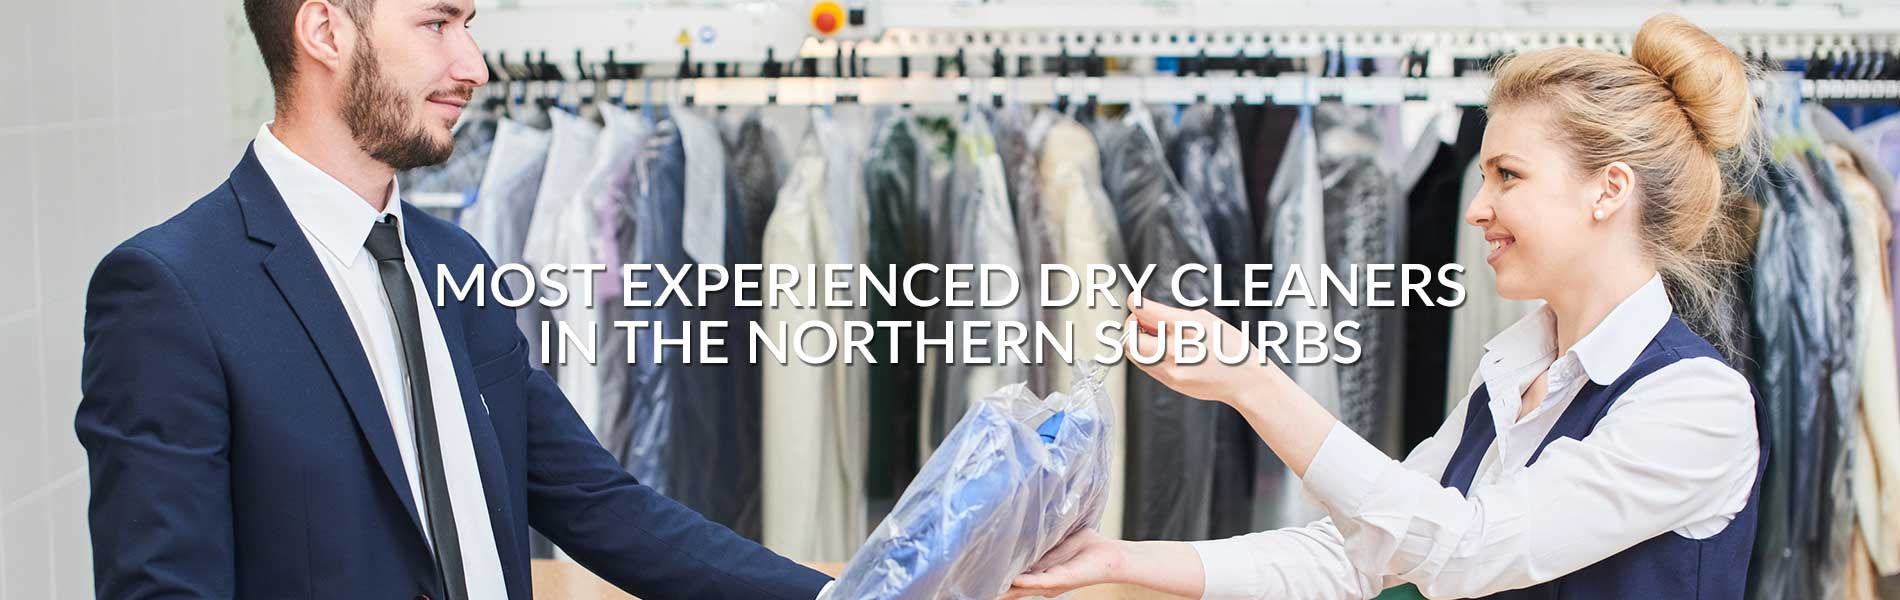 Dry-Cleaning-Slider-Image1_OI